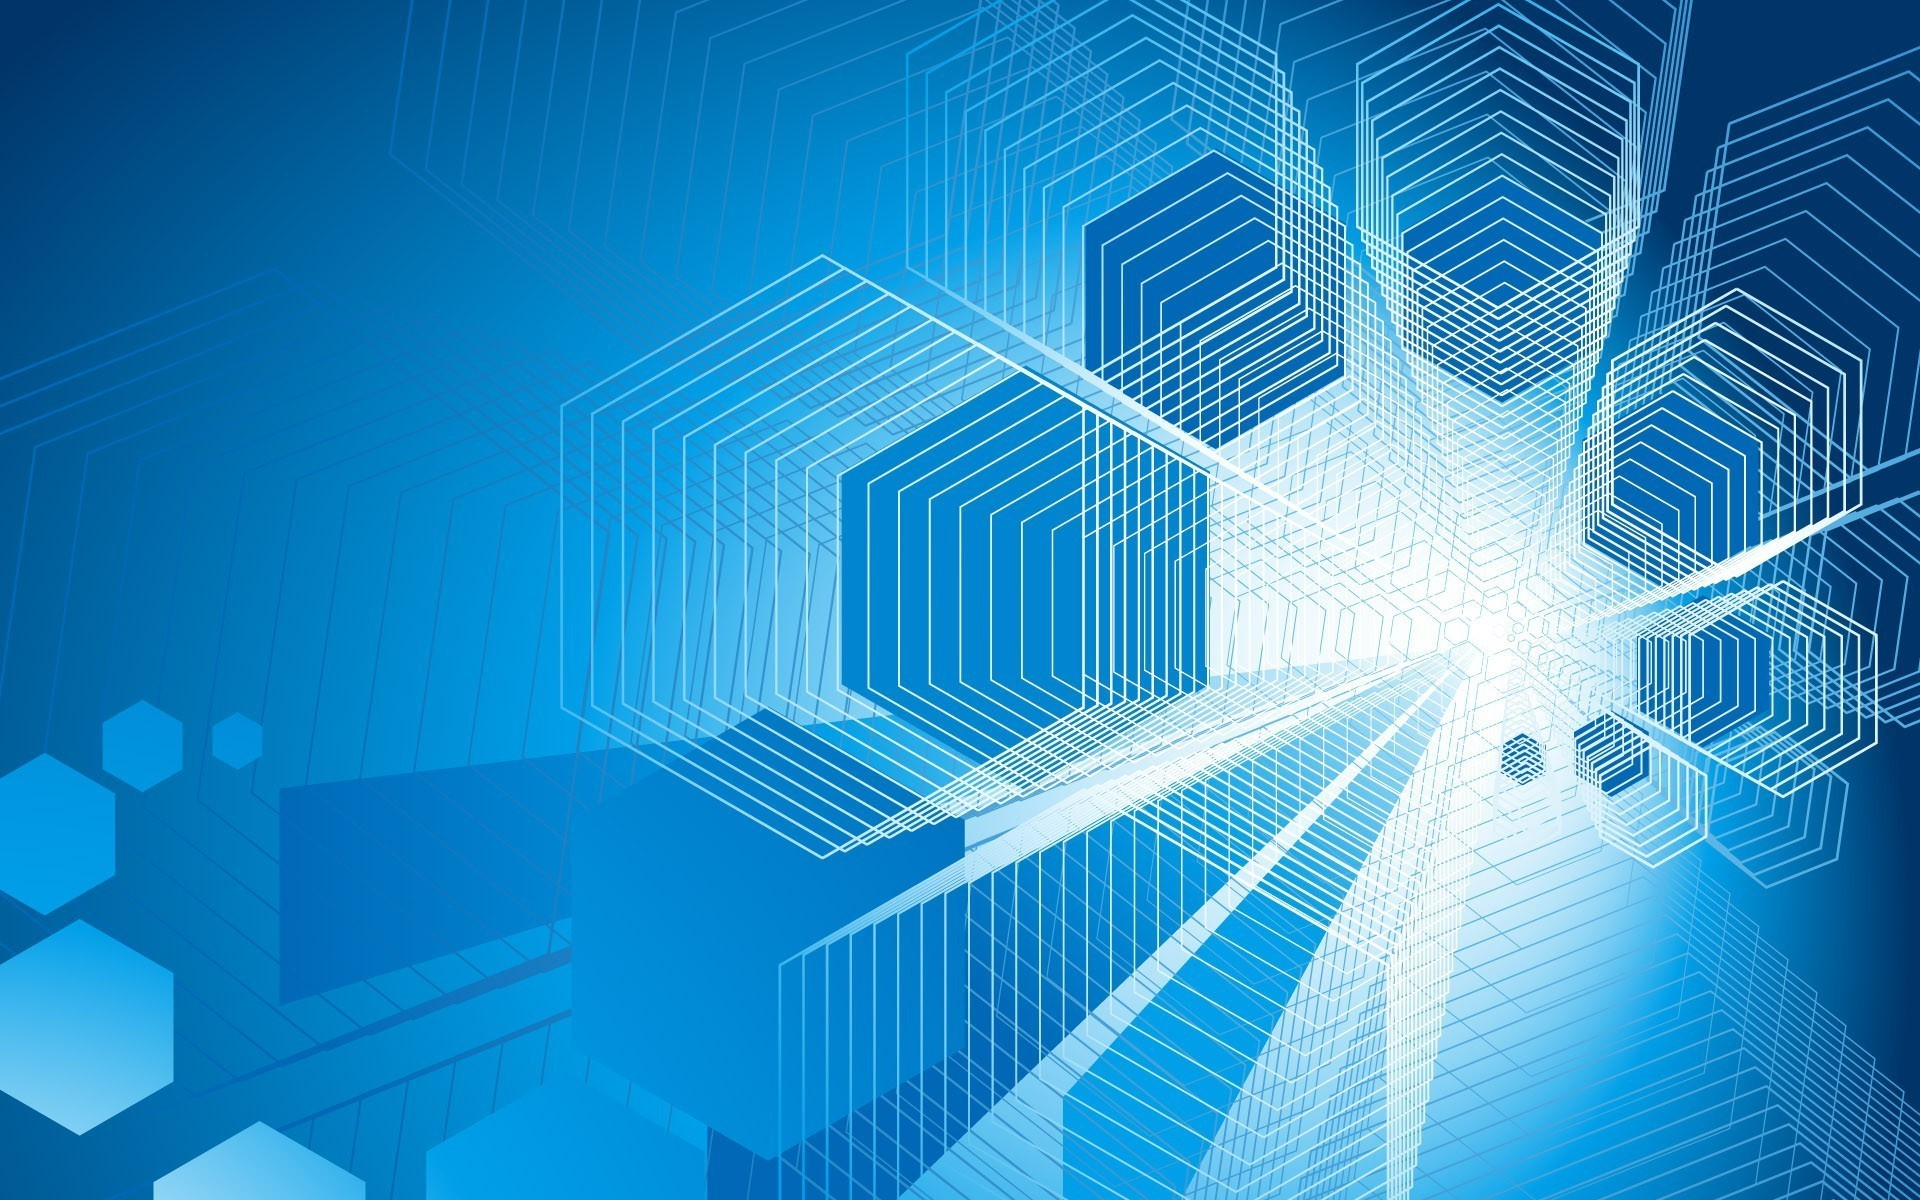 Res: 1920x1200, geometry simple background blue background abstract digital art artwork hexagon  wallpaper and background